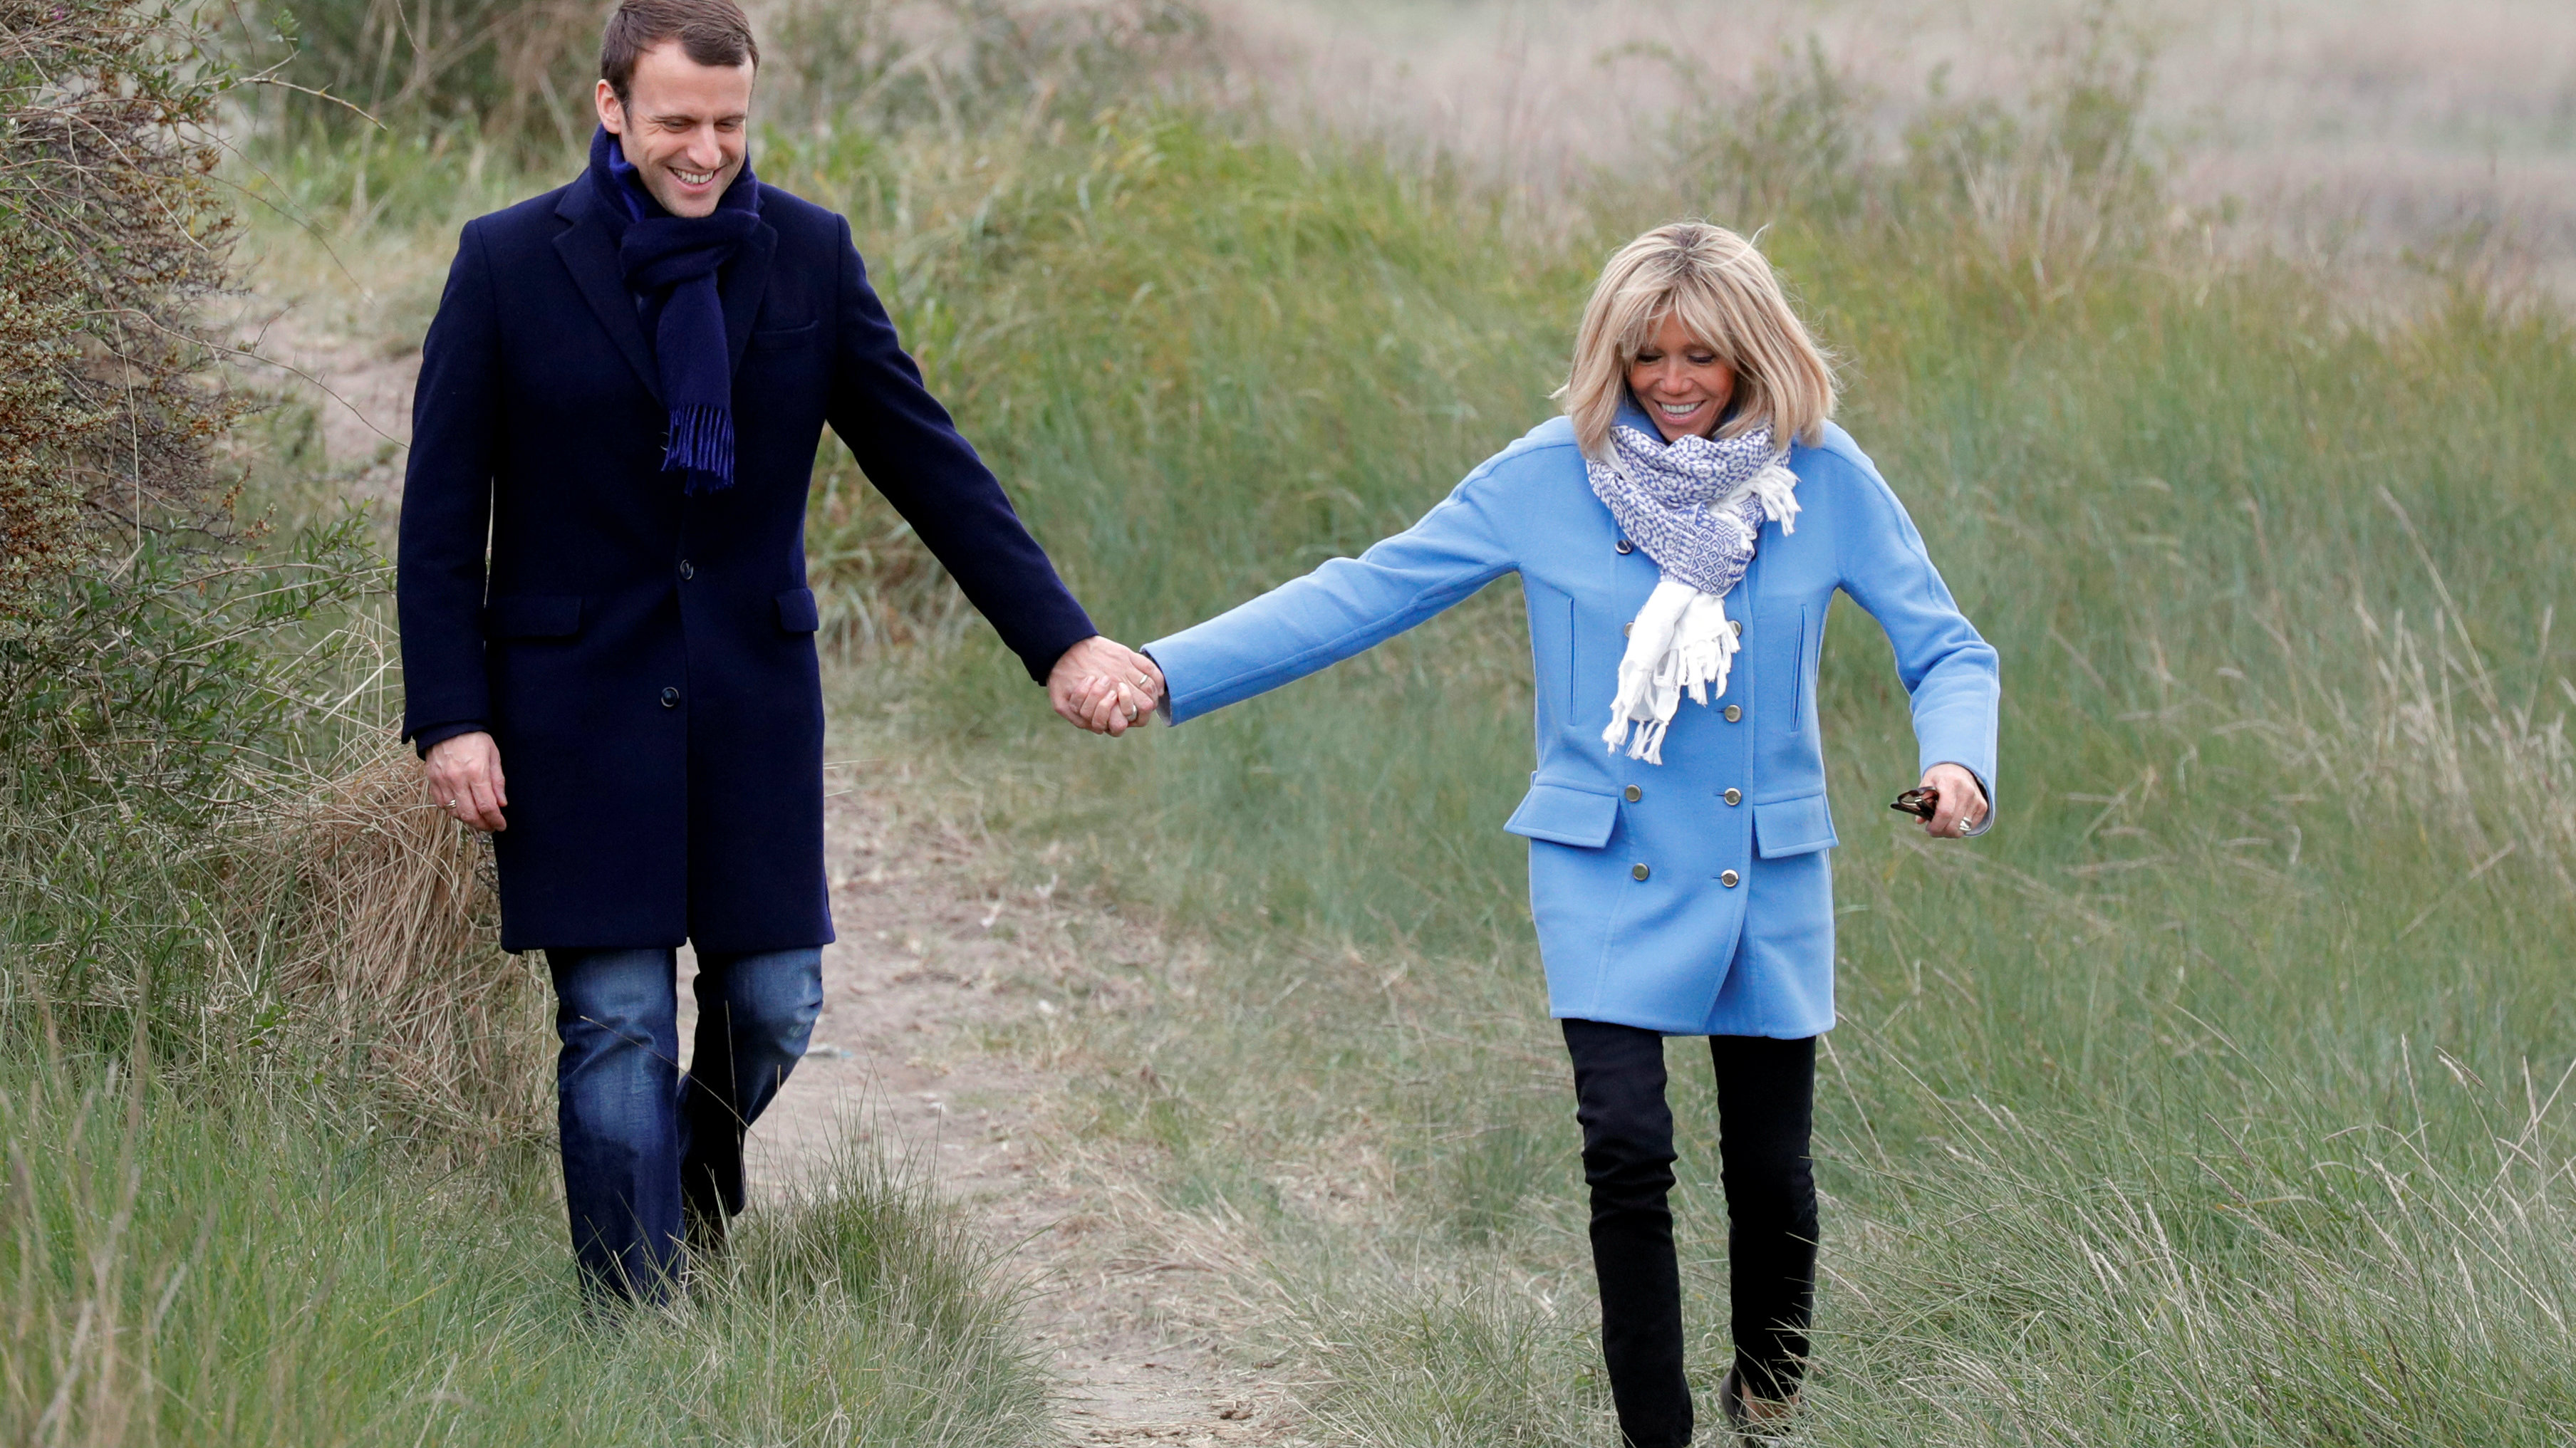 Emmanuel Macron, head of the political movement En Marche!, or Onwards!, and candidate for the 2017 French presidential election and his wife Brigitte Trogneux pose in countryside in Le Touquet, France, on the eve of France's first round of the Presidential election, April 22, 2017. REUTERS/Philippe Wojazer